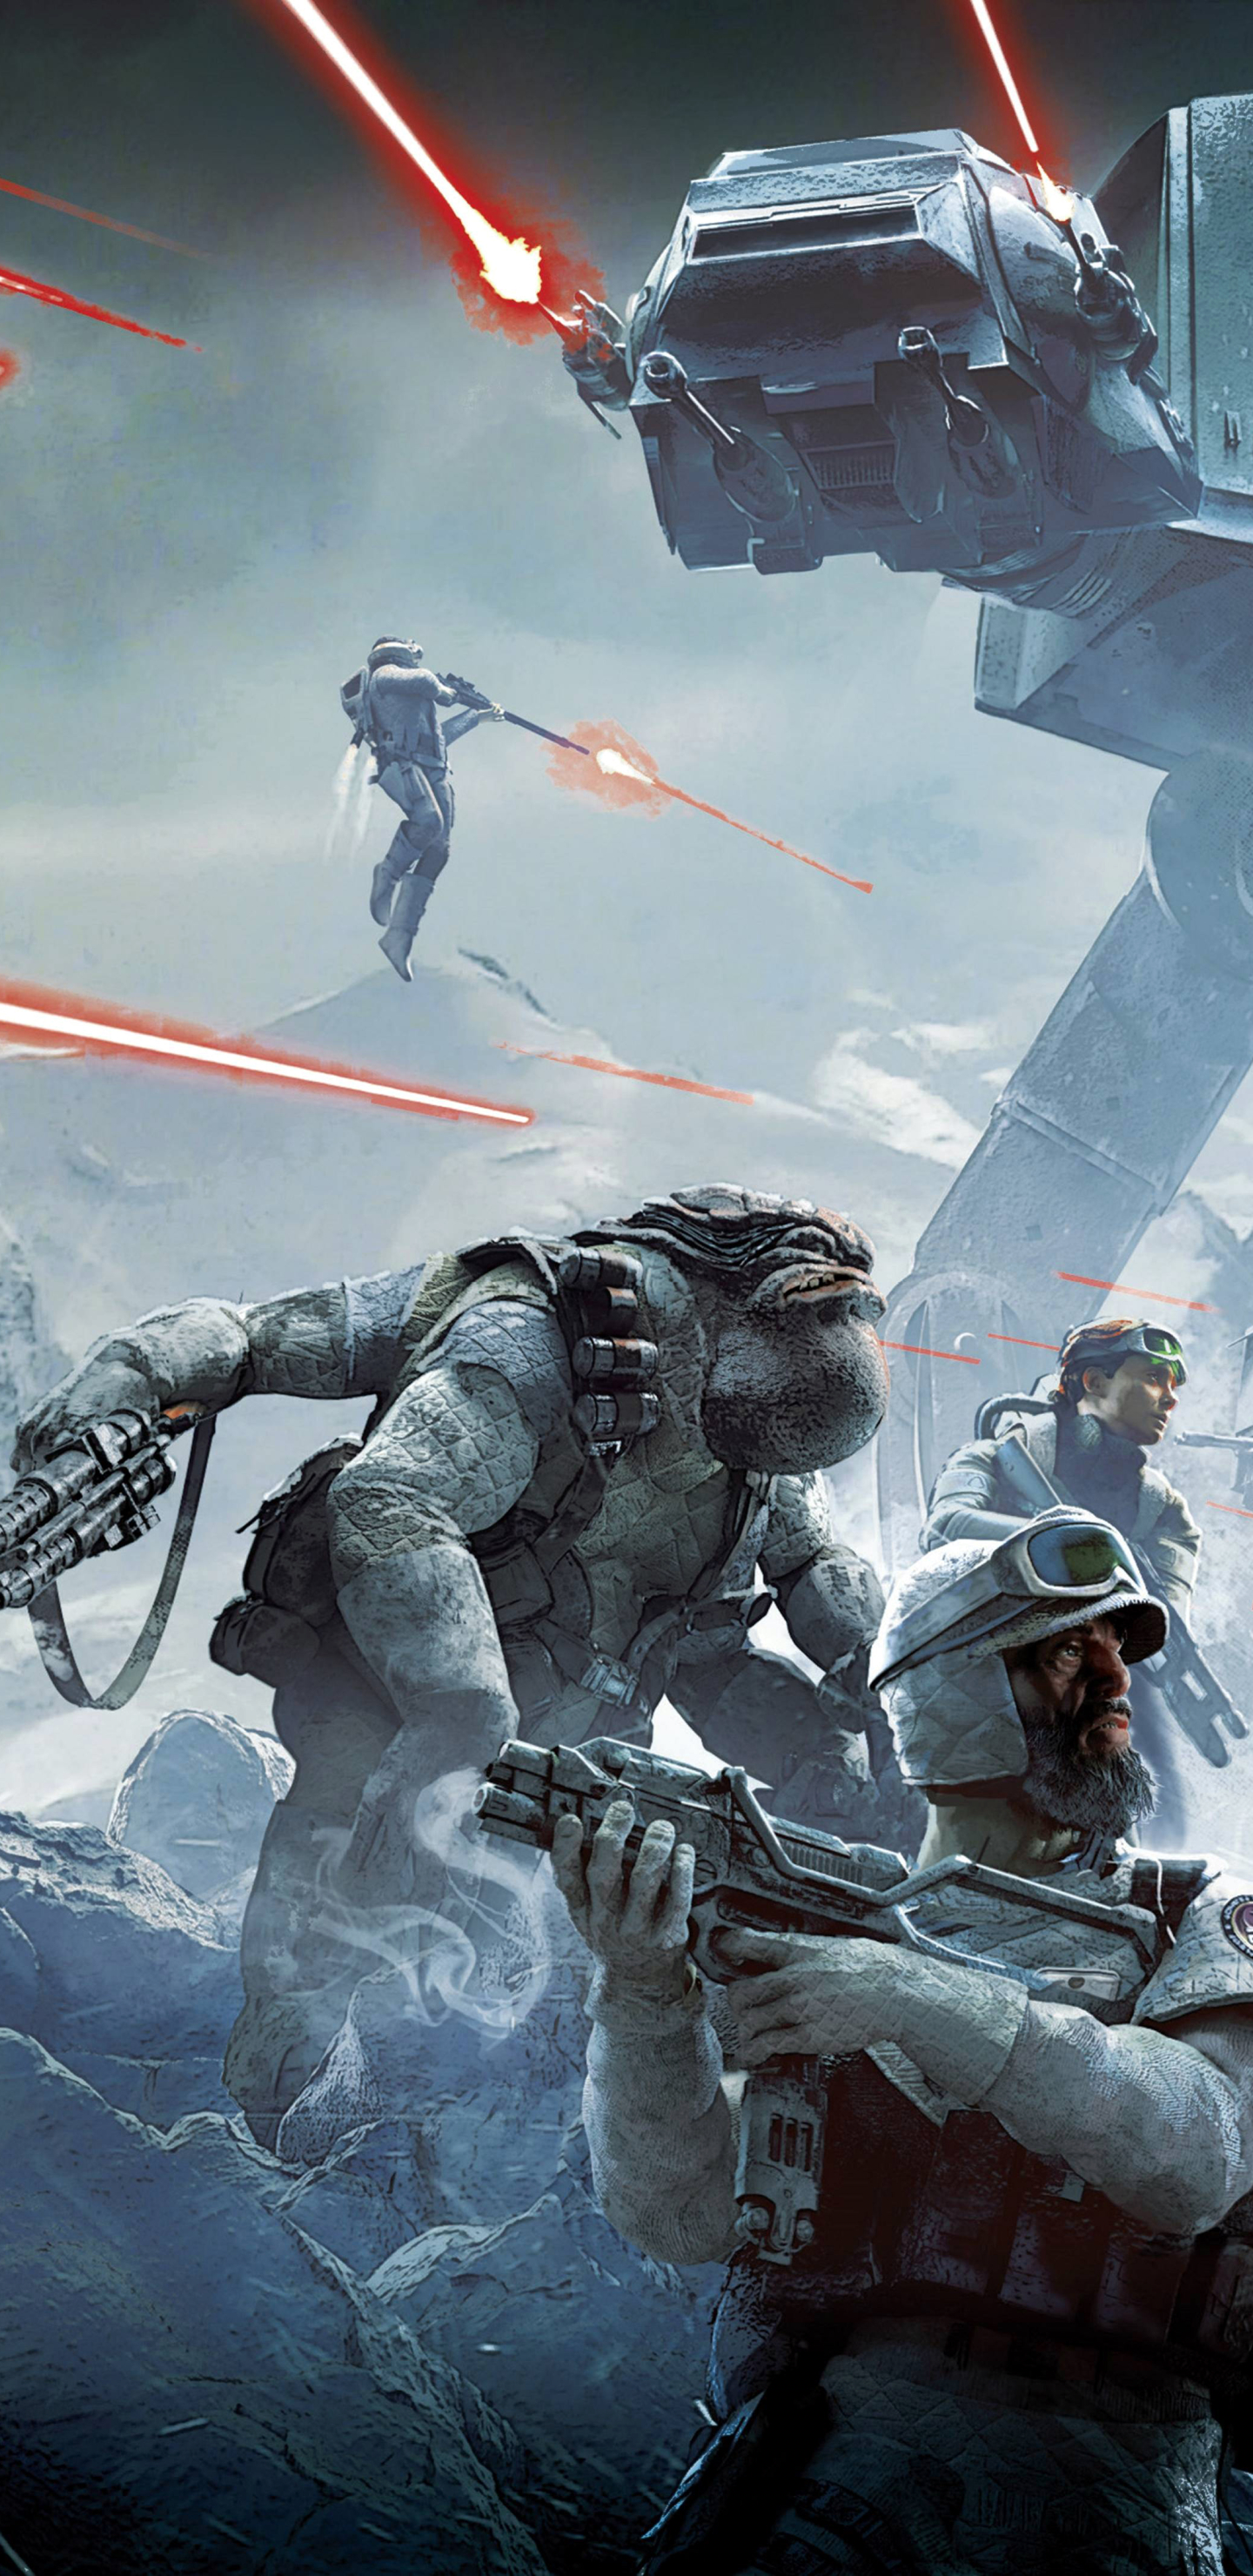 Video Game Star Wars Battlefront 2015 1440x2960 Wallpaper Id